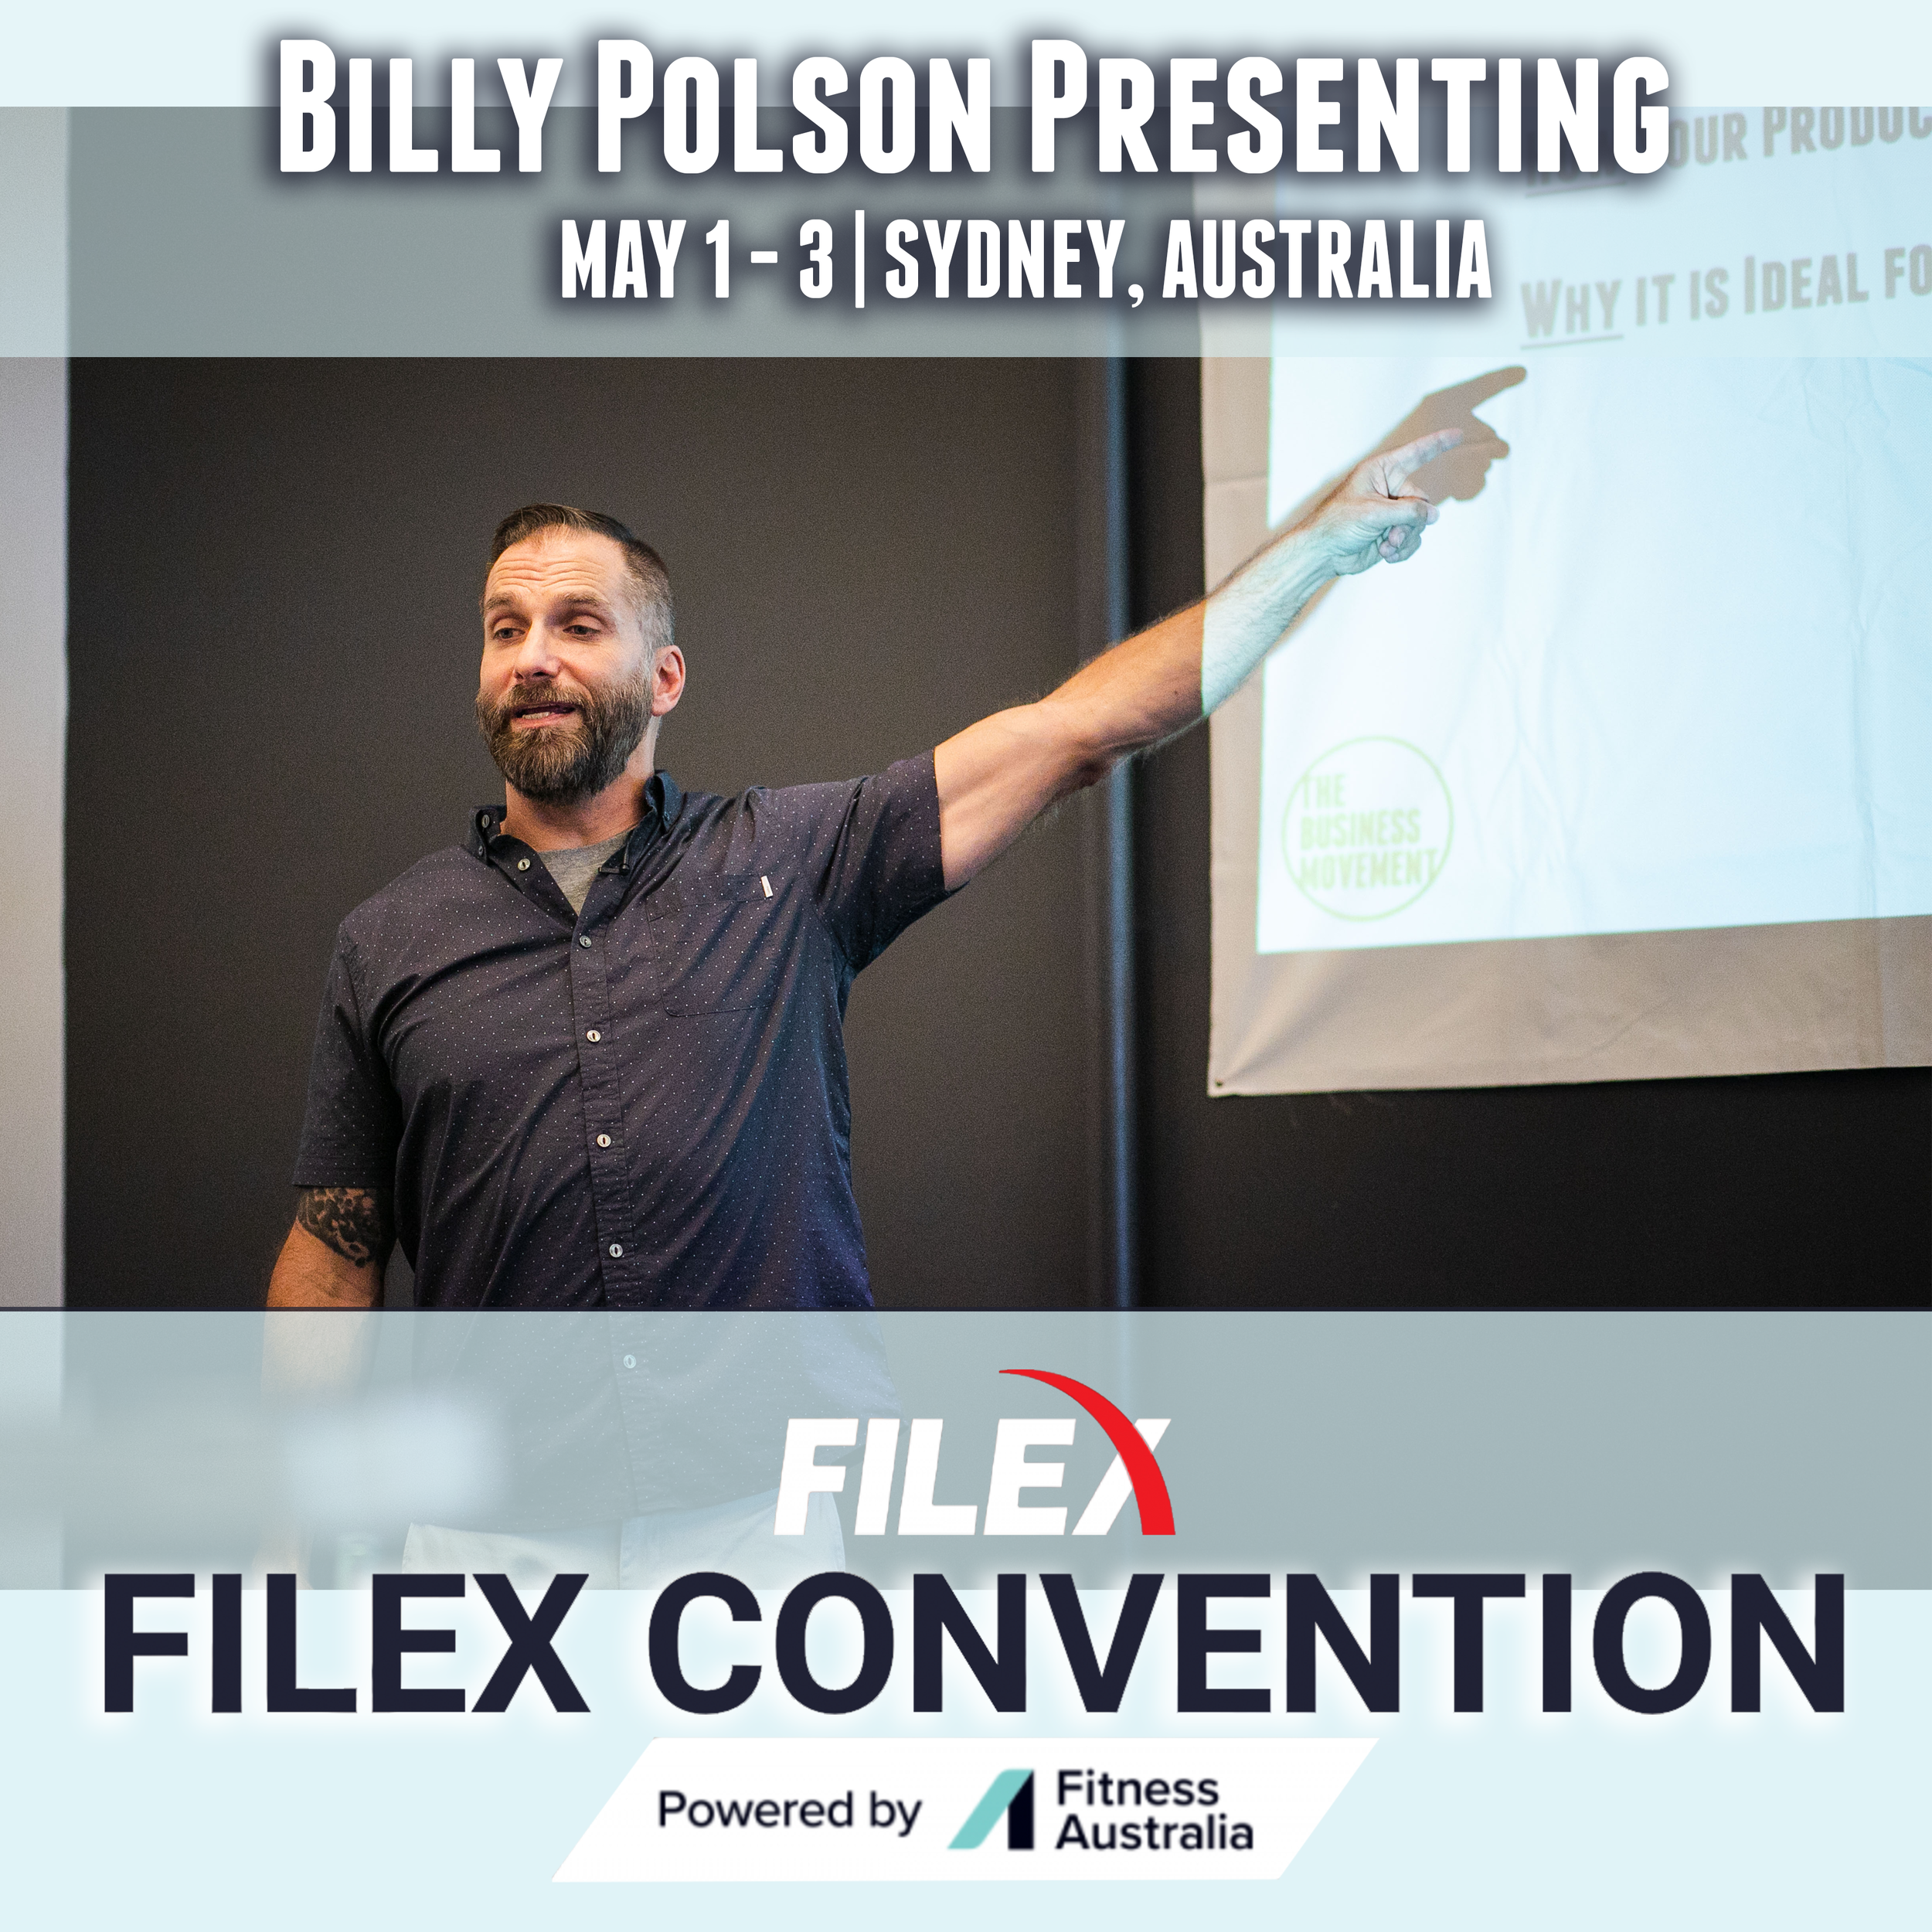 FILEX-Convention-2020-Billy-Polson.png